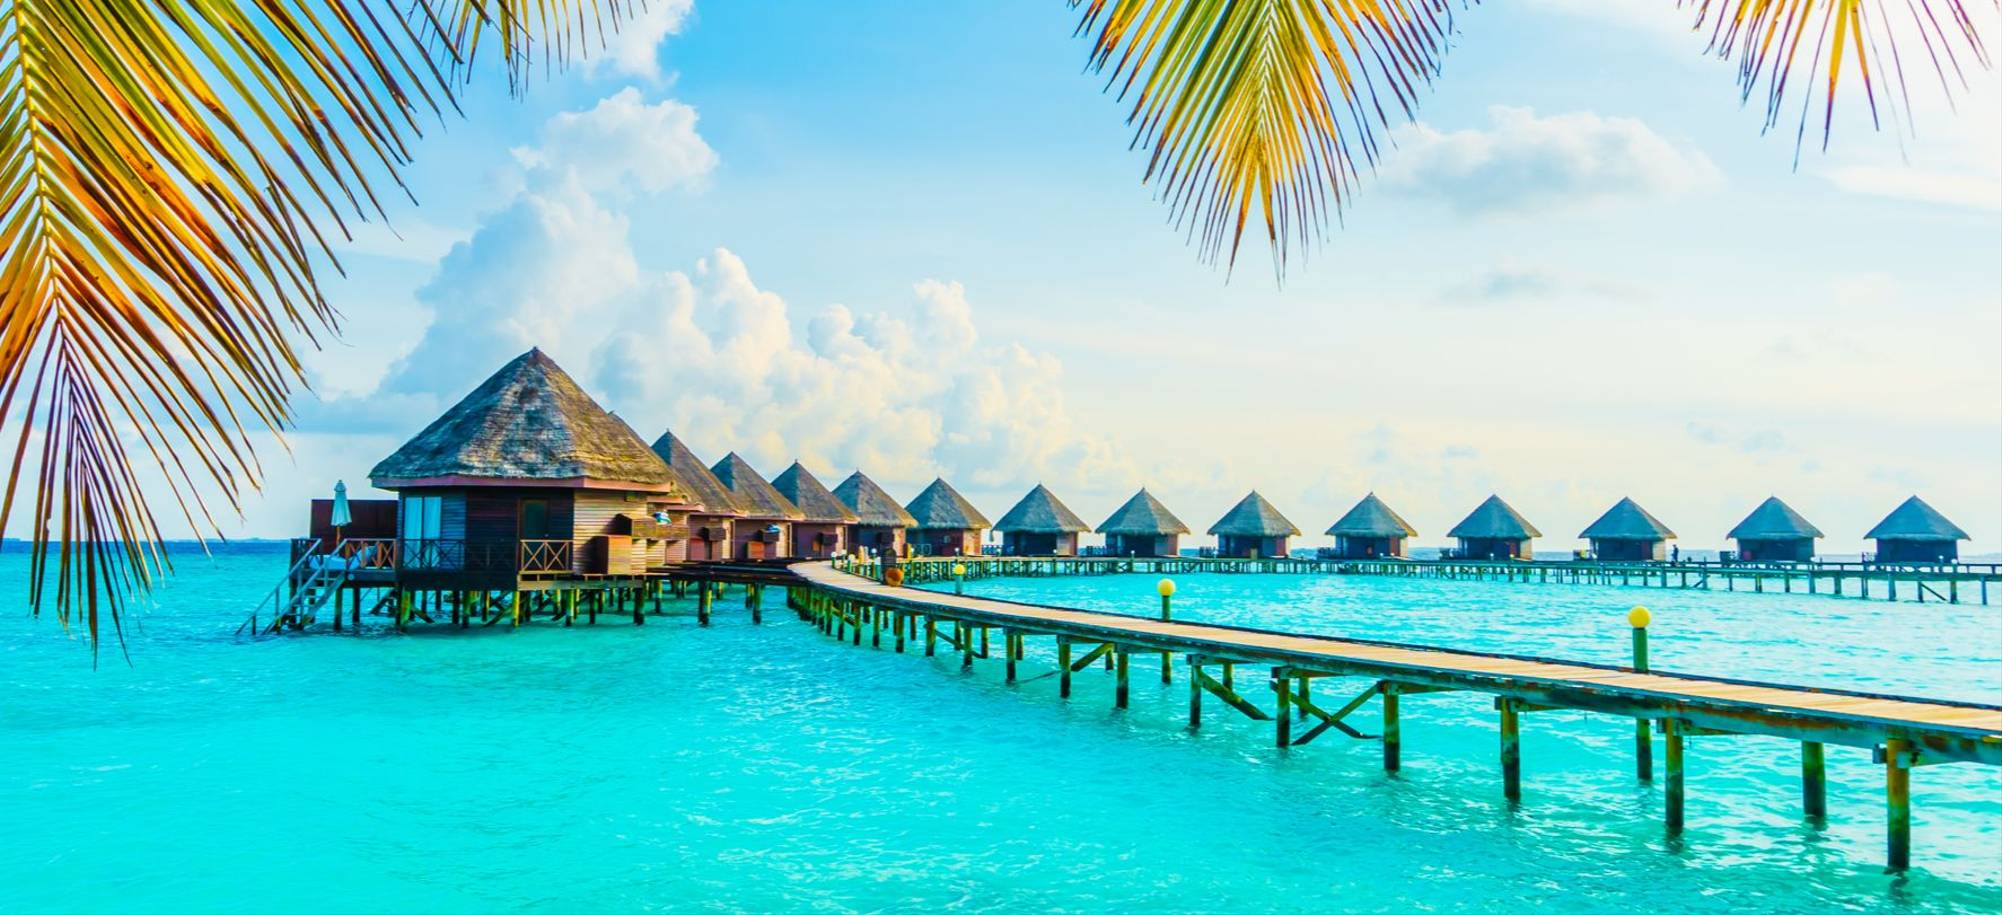 Maldives - Itinerary Desktop .jpg